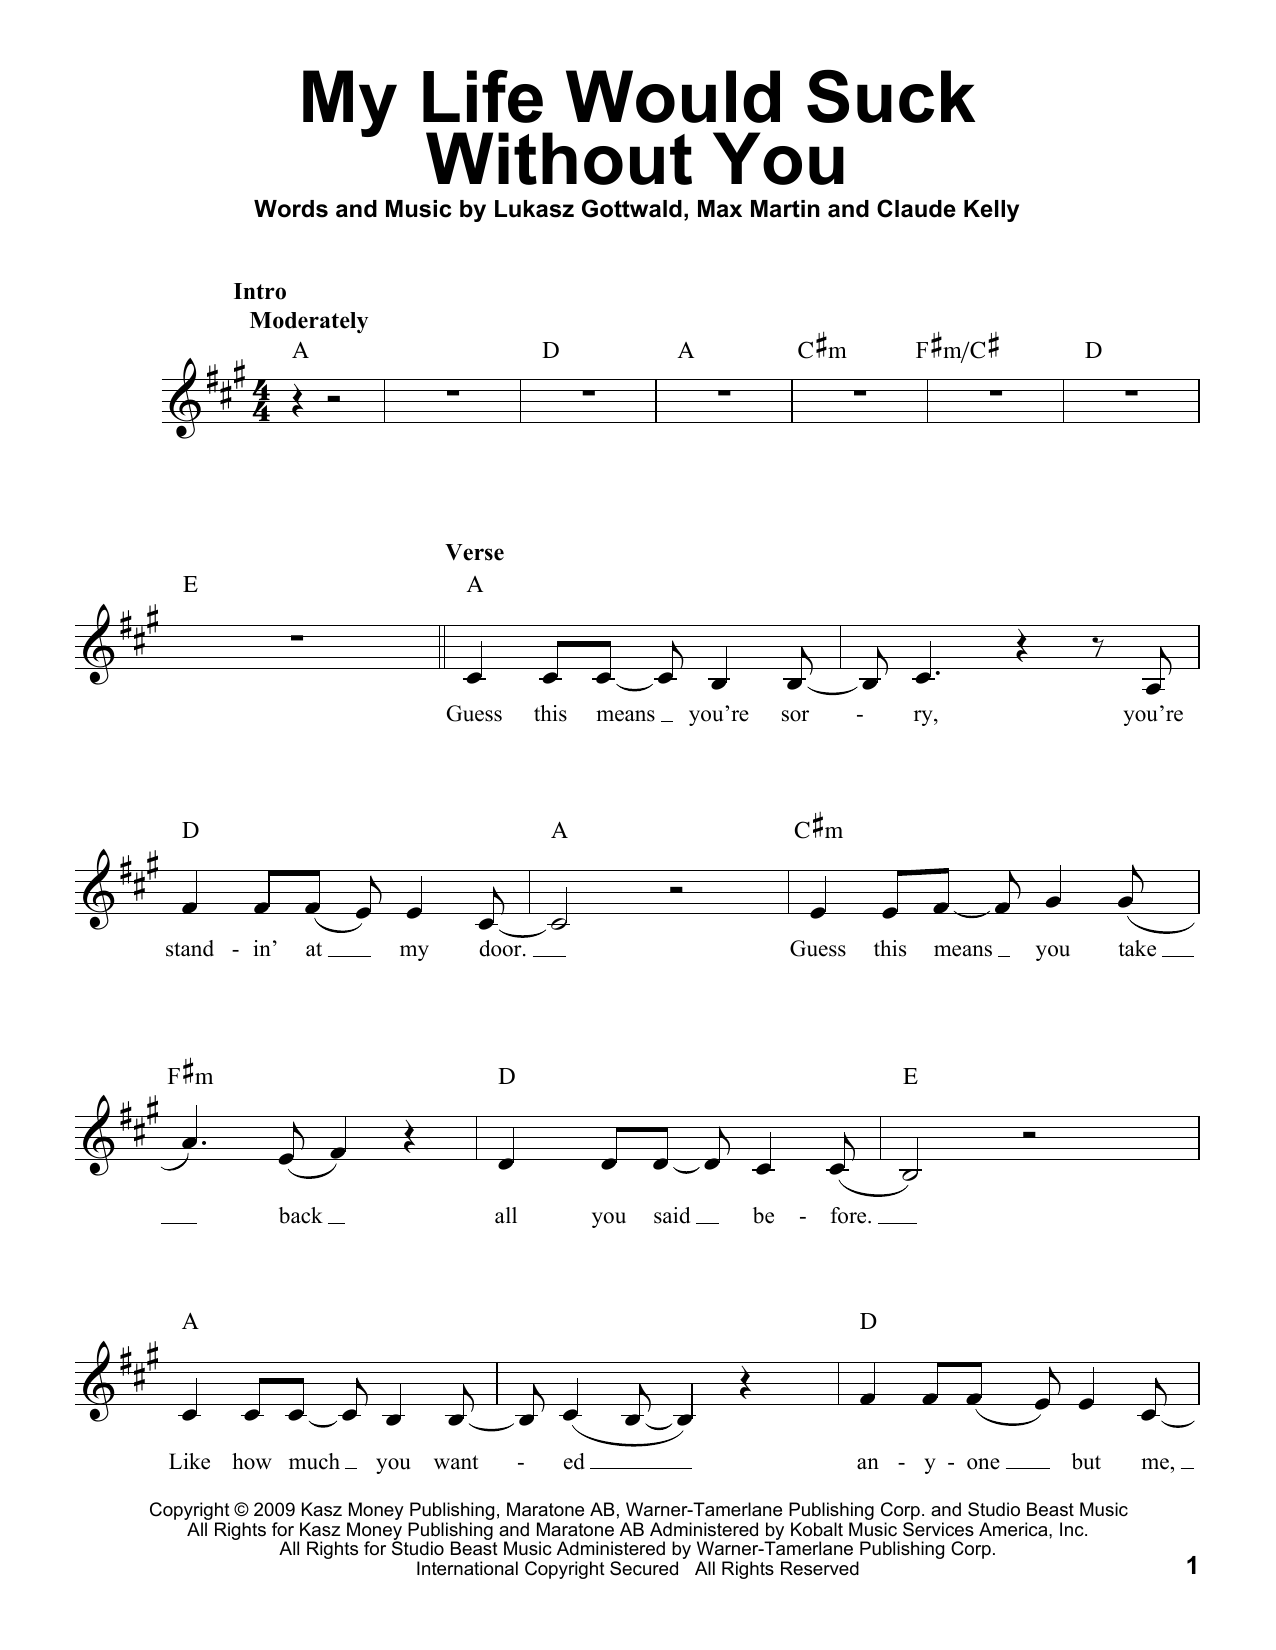 My Life Would Suck Without You Sheet Music